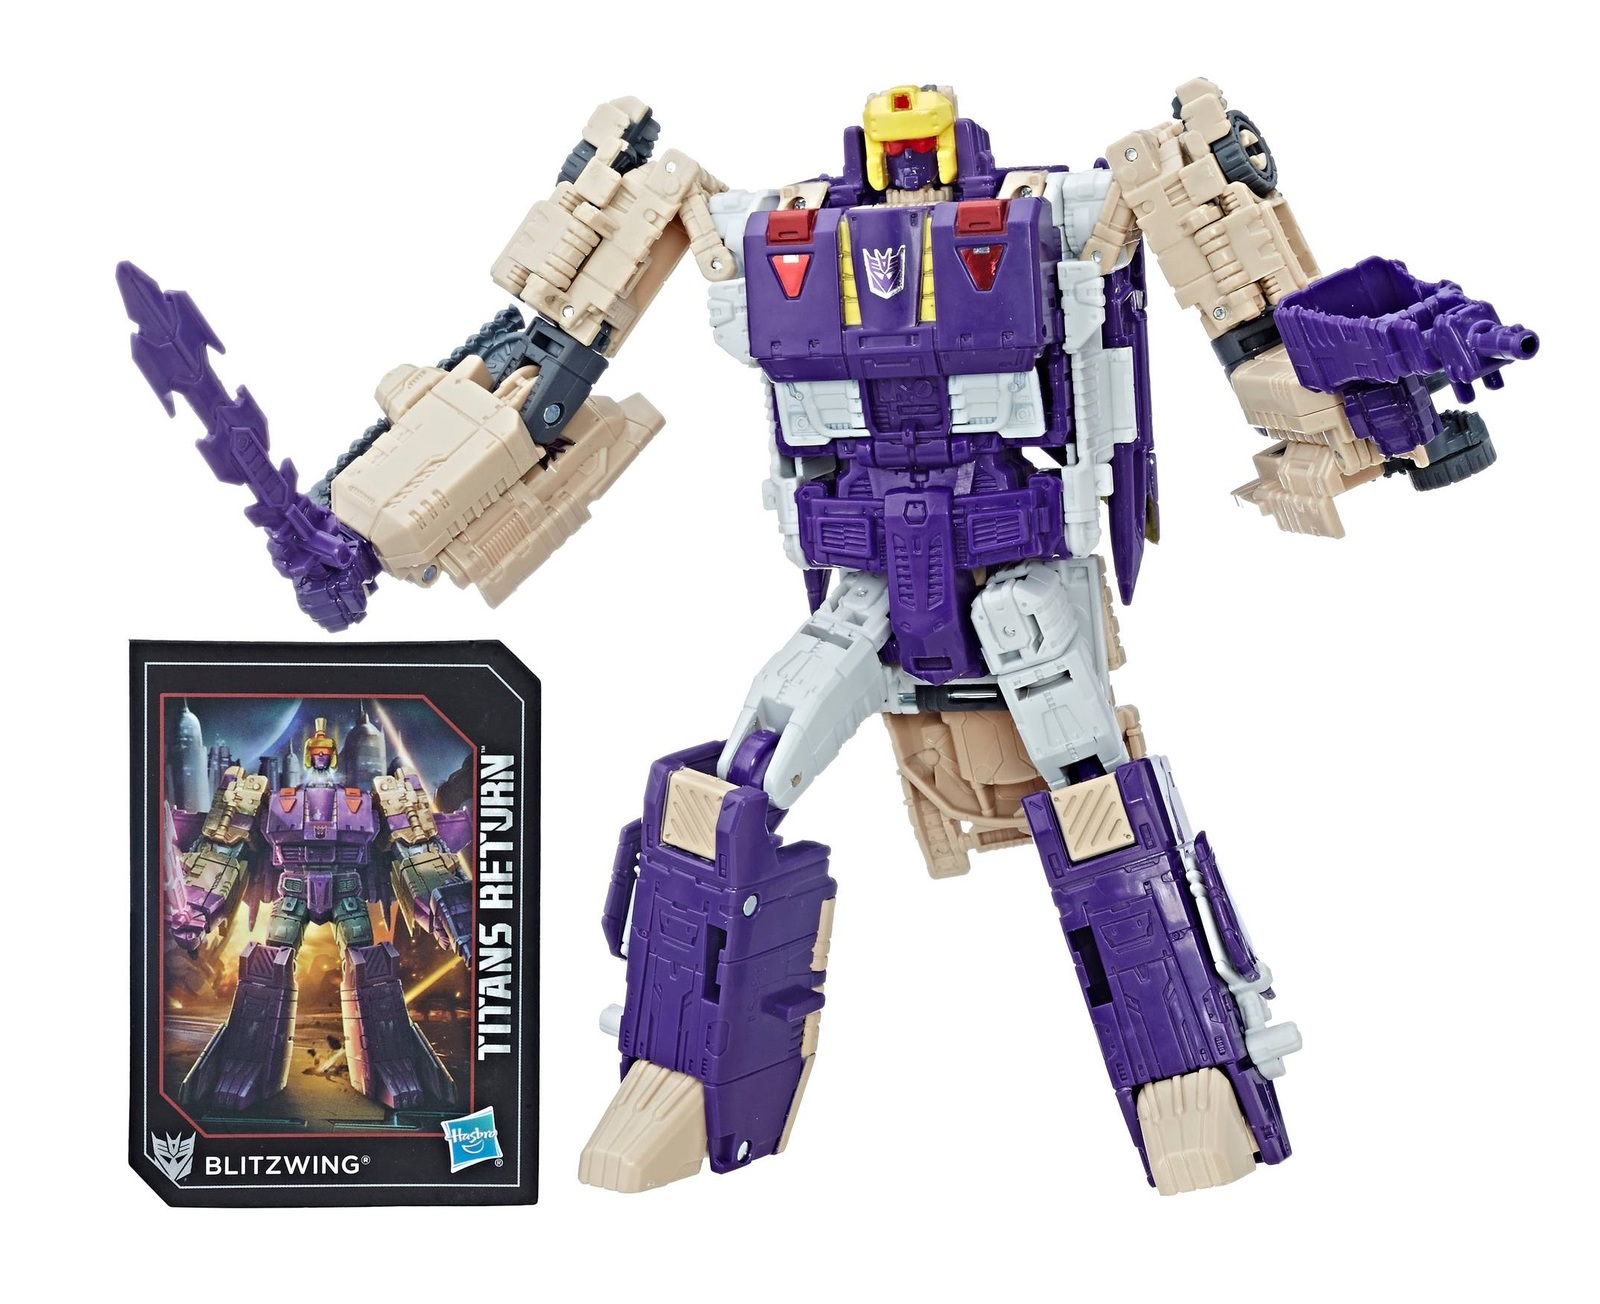 Transformers: Generations - Voyager - Blitzwing image